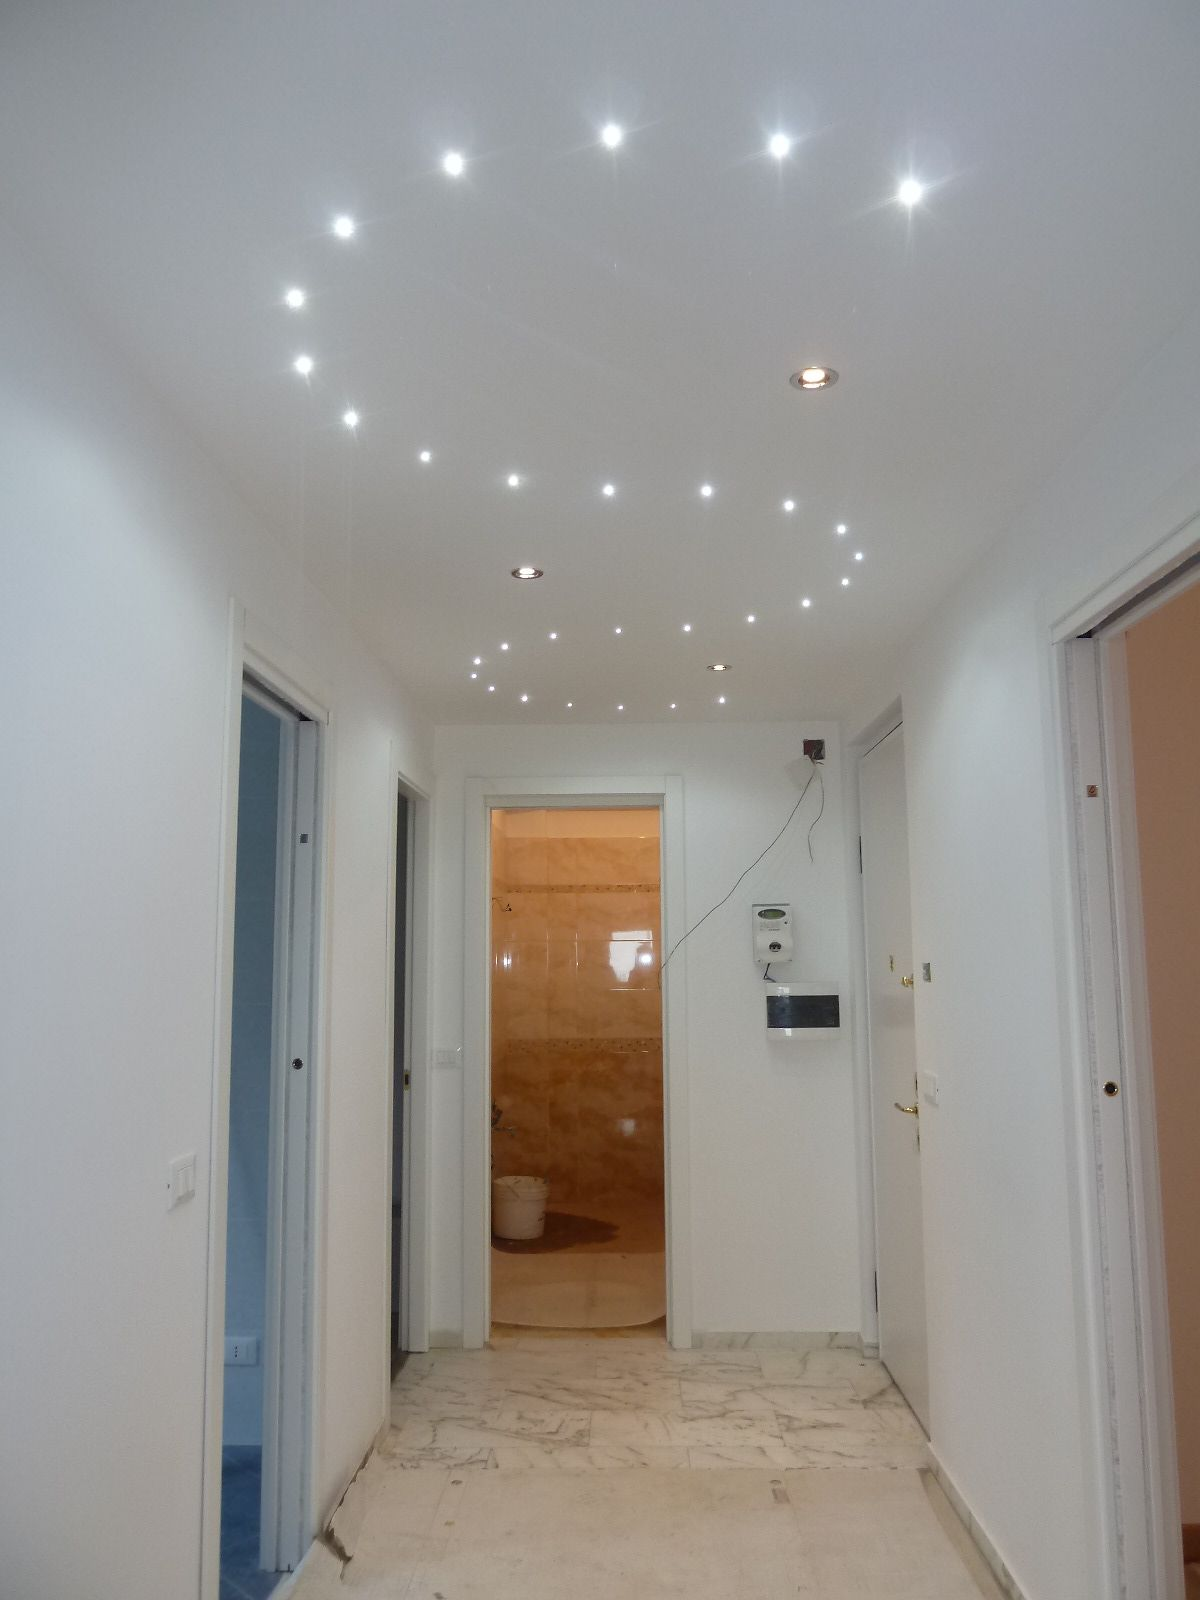 controsoffitti illuminazione led - Cerca con Google  Controsoffitti  Pinterest  LED ...